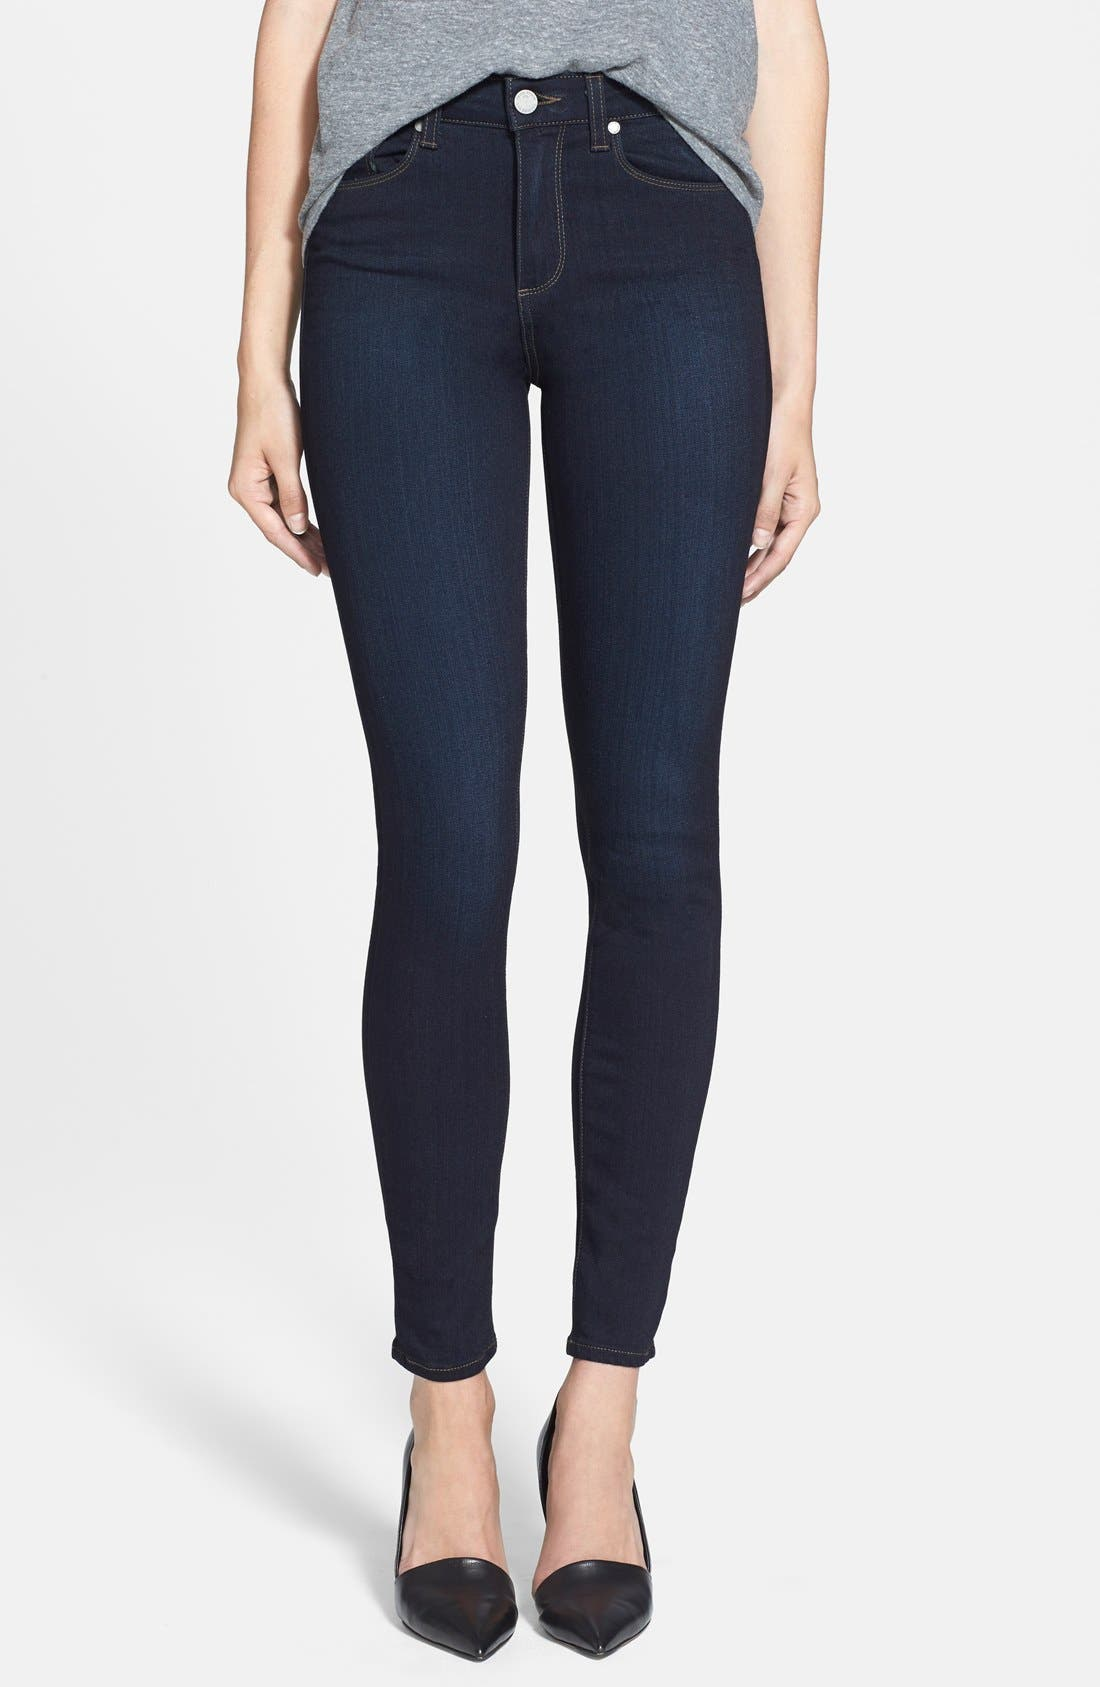 Alternate Image 1 Selected - PAIGE Transcend - Hoxton High Waist Ultra Skinny Jeans (Mona)